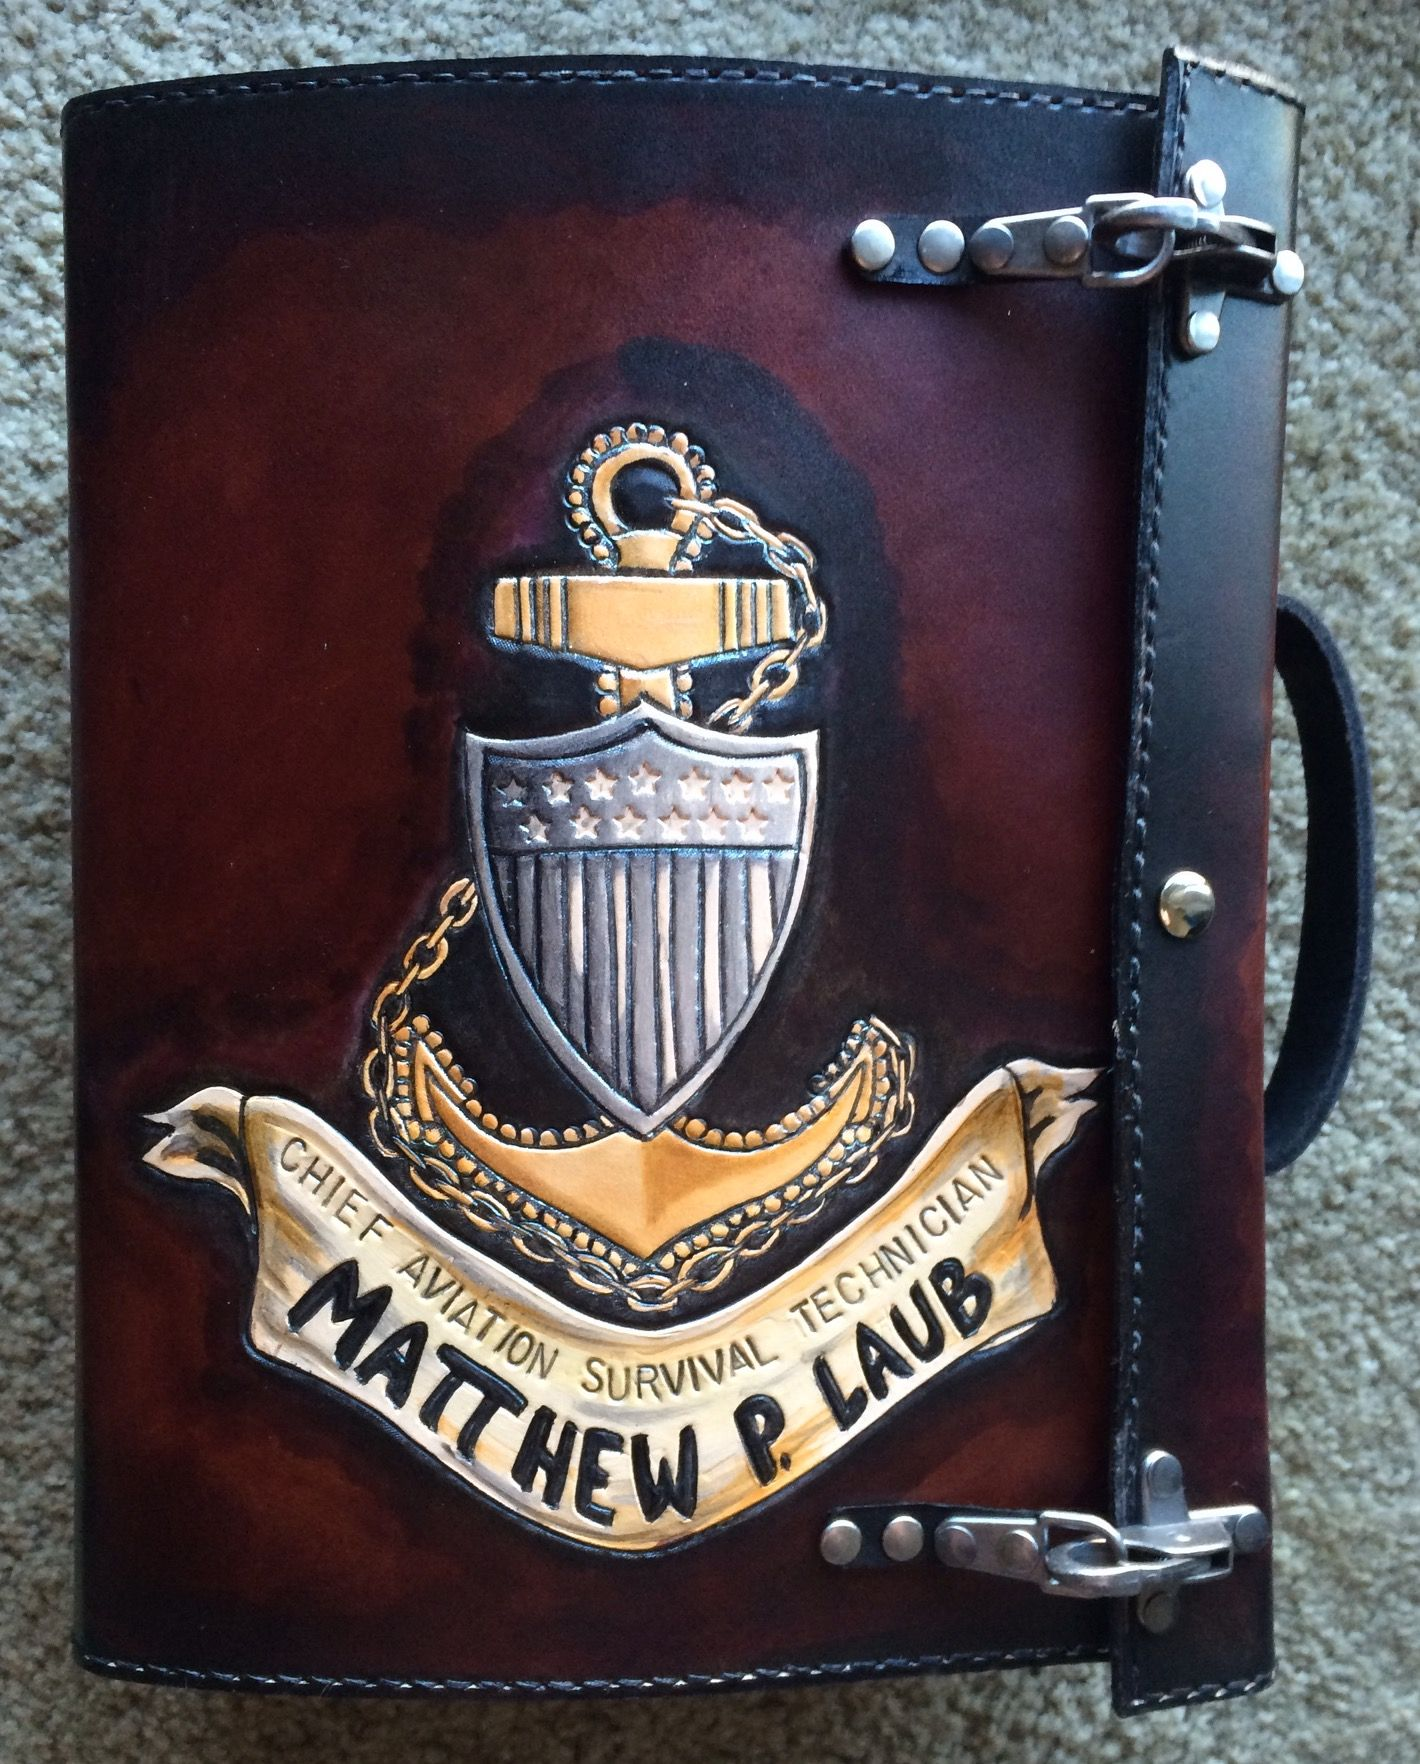 Buy A Hand Made Cpo Charge Book Rescue Diver Coast Guard